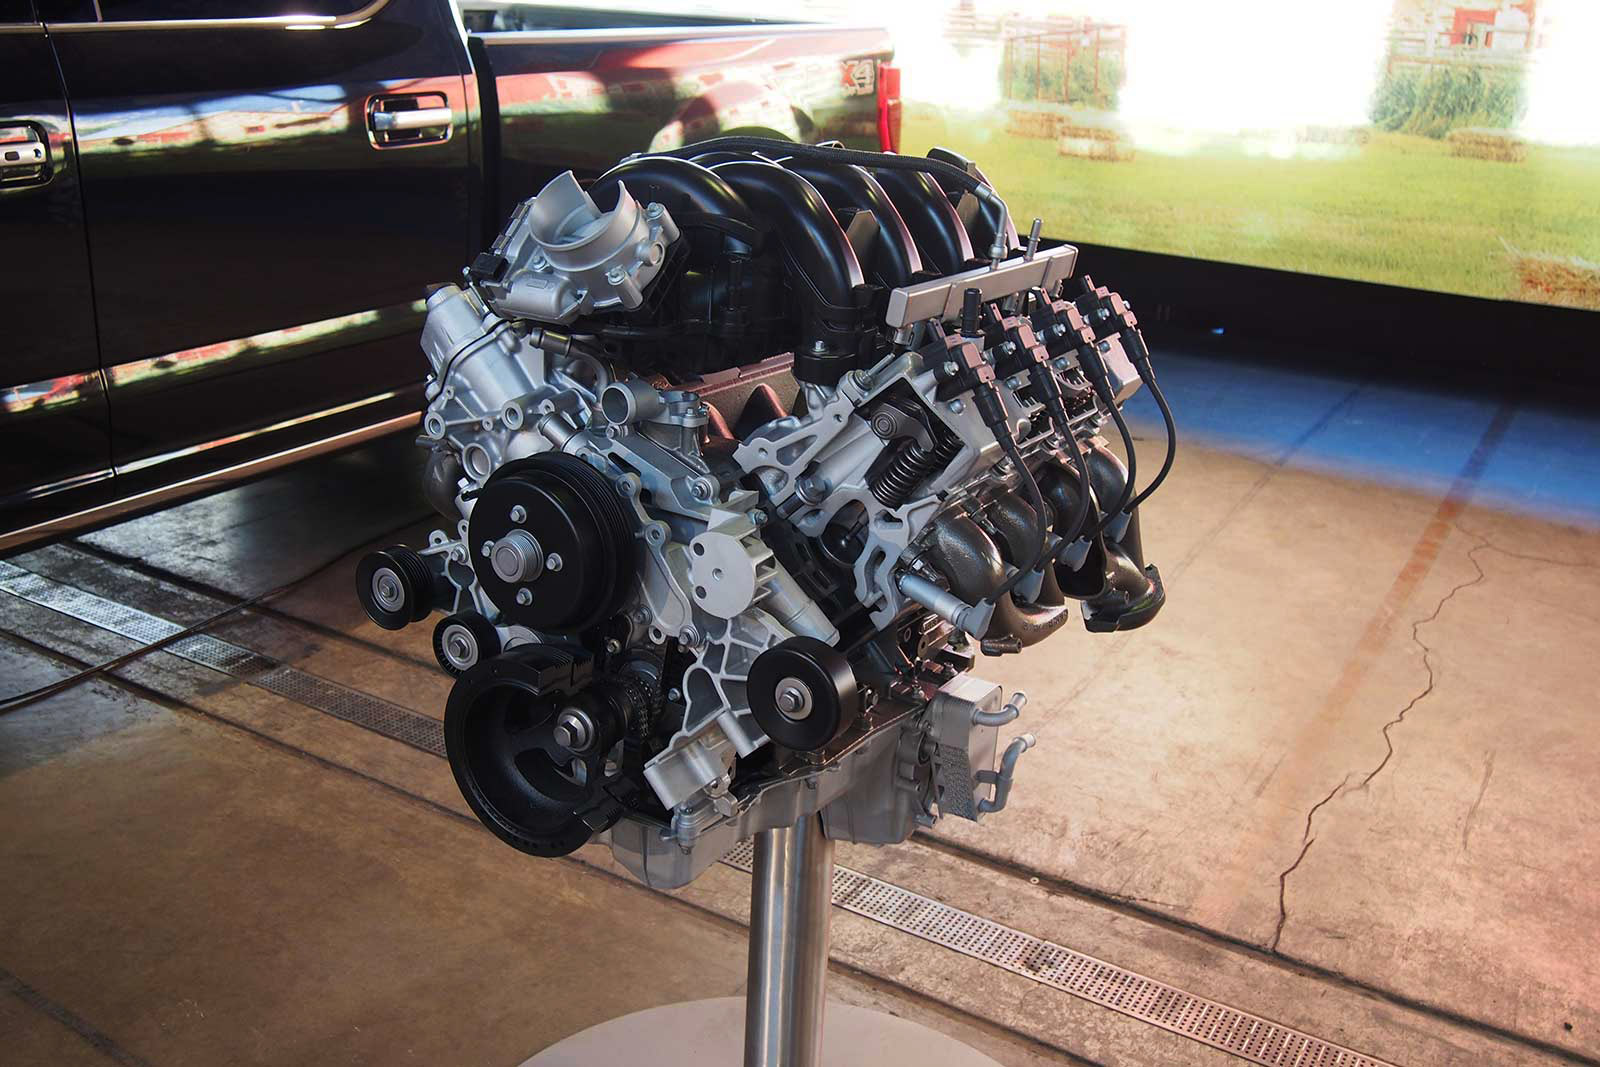 New 7 liter engine from Ford...??? - Page 2 2020-Ford-Super-Duty-Big-Block-V8-01